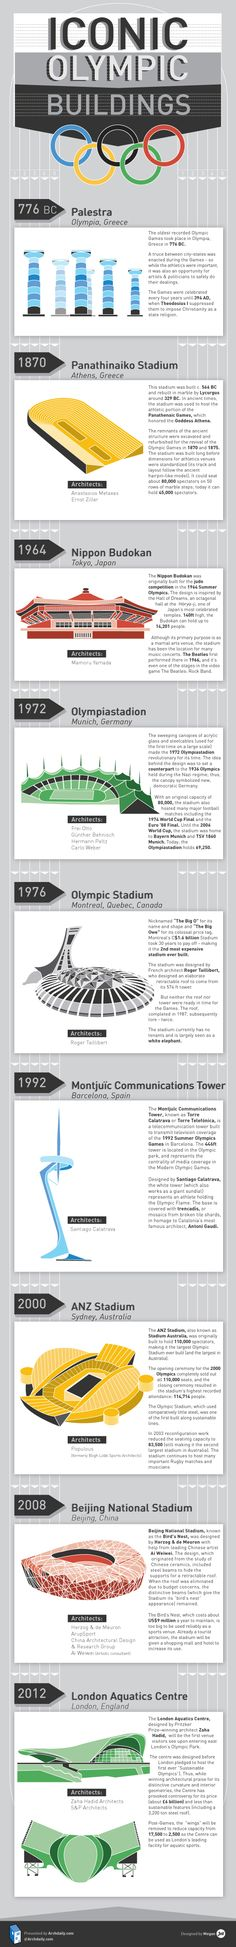 Iconic #Olympic Buildings  Archdaily takes a look at interesting past olympic buildings and how they are being used today.